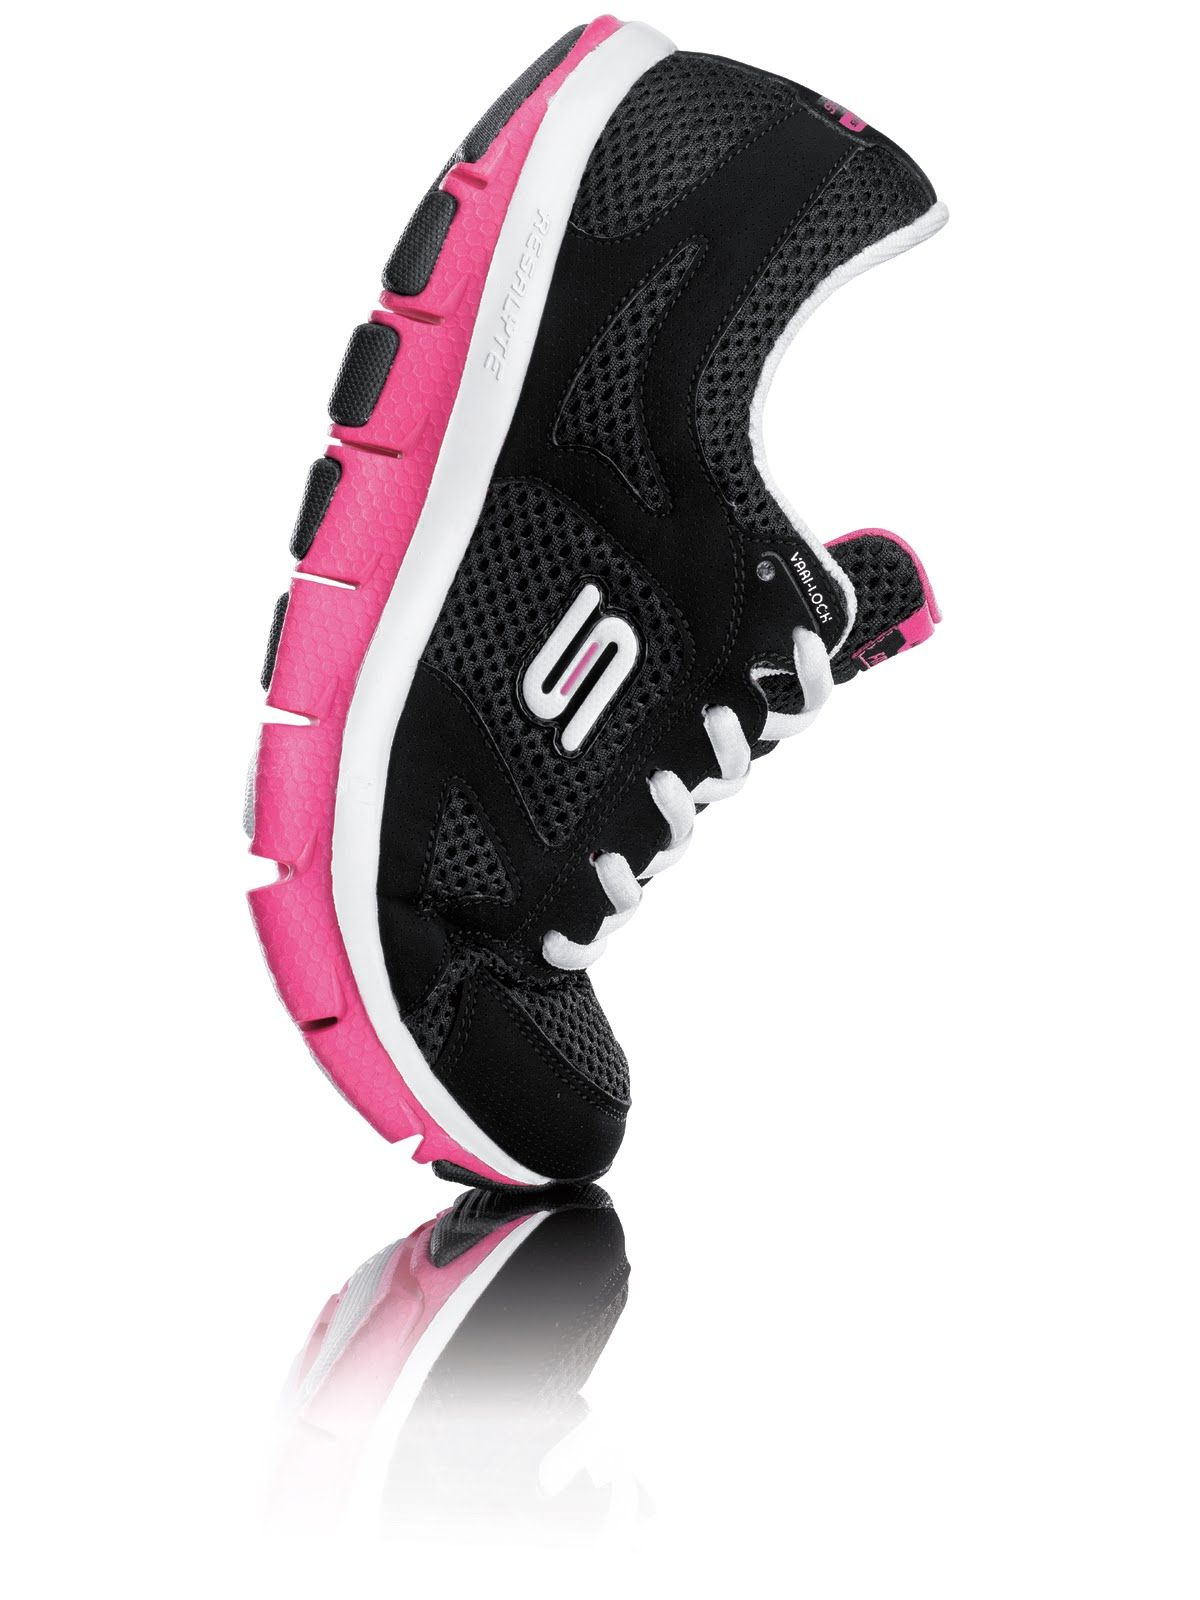 Skechers Livlove these:) wear em to